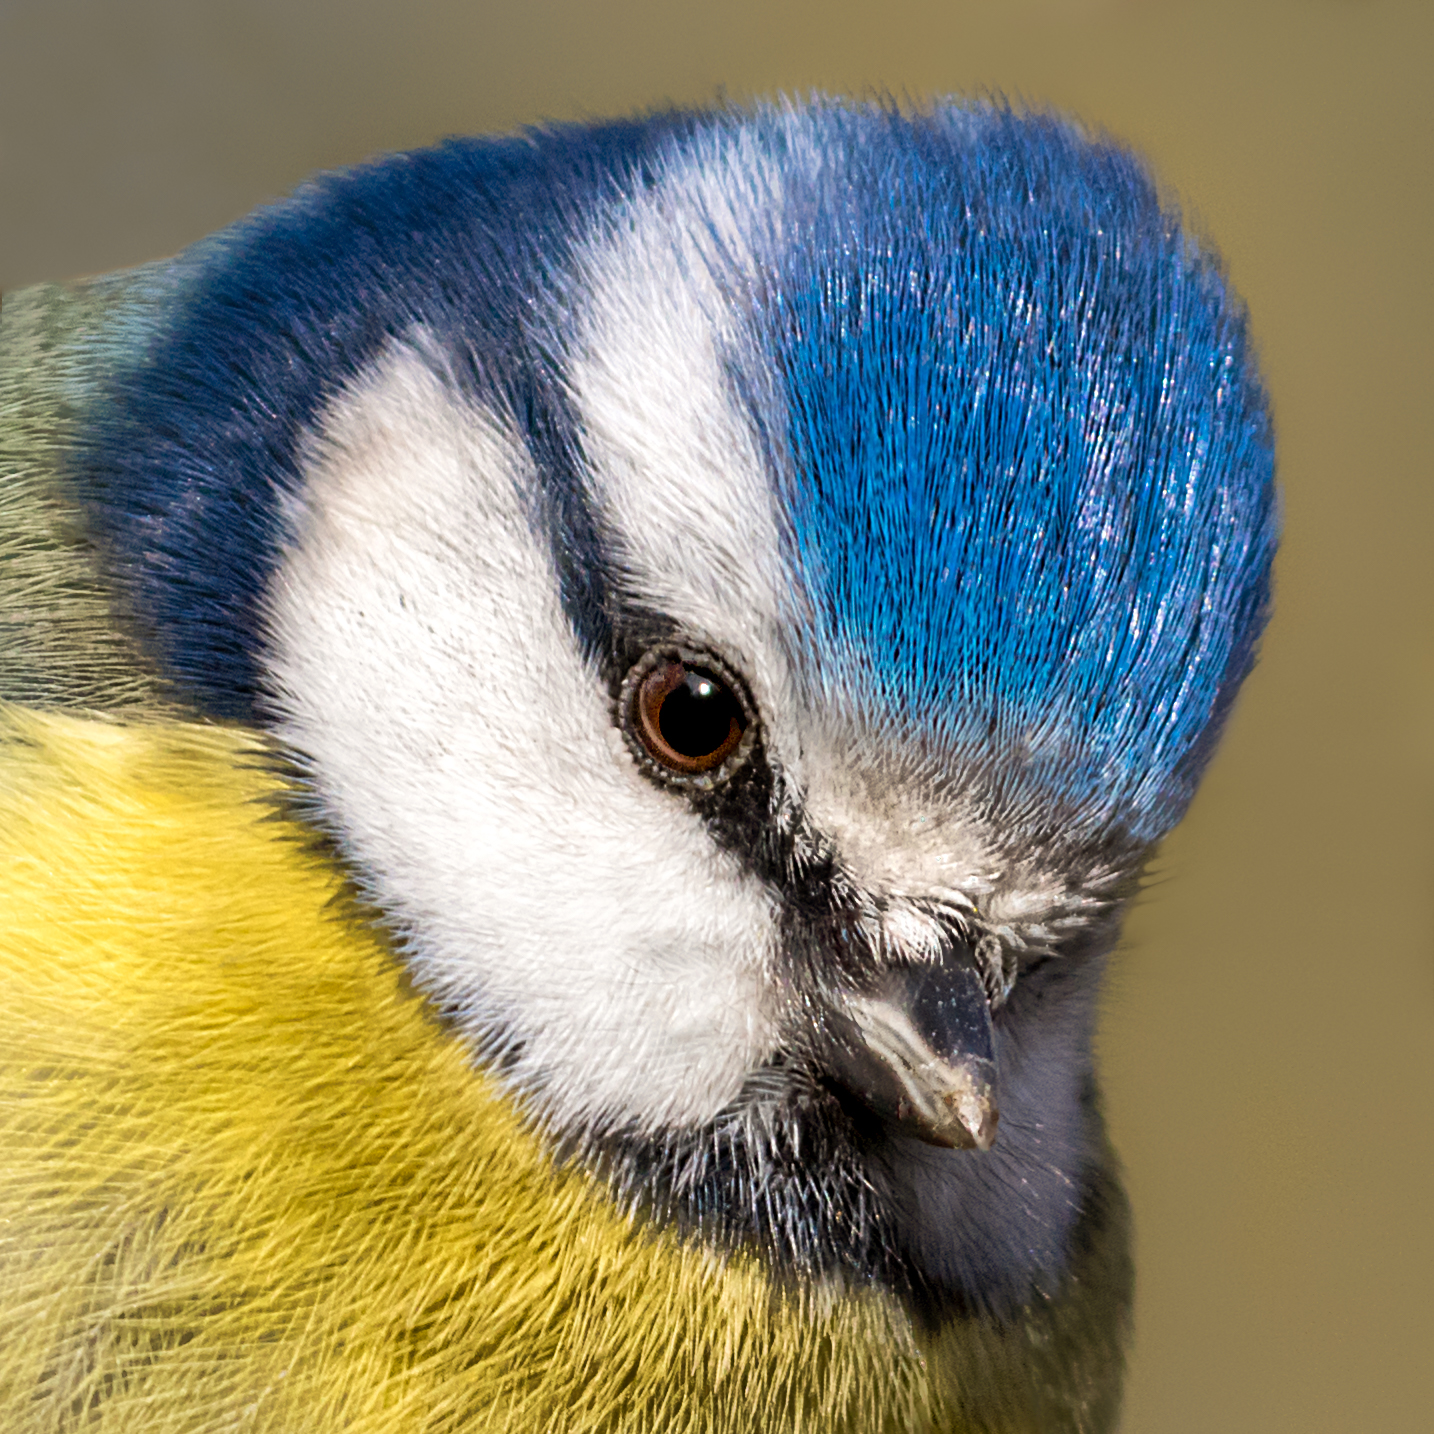 Blue Tit portrait #6